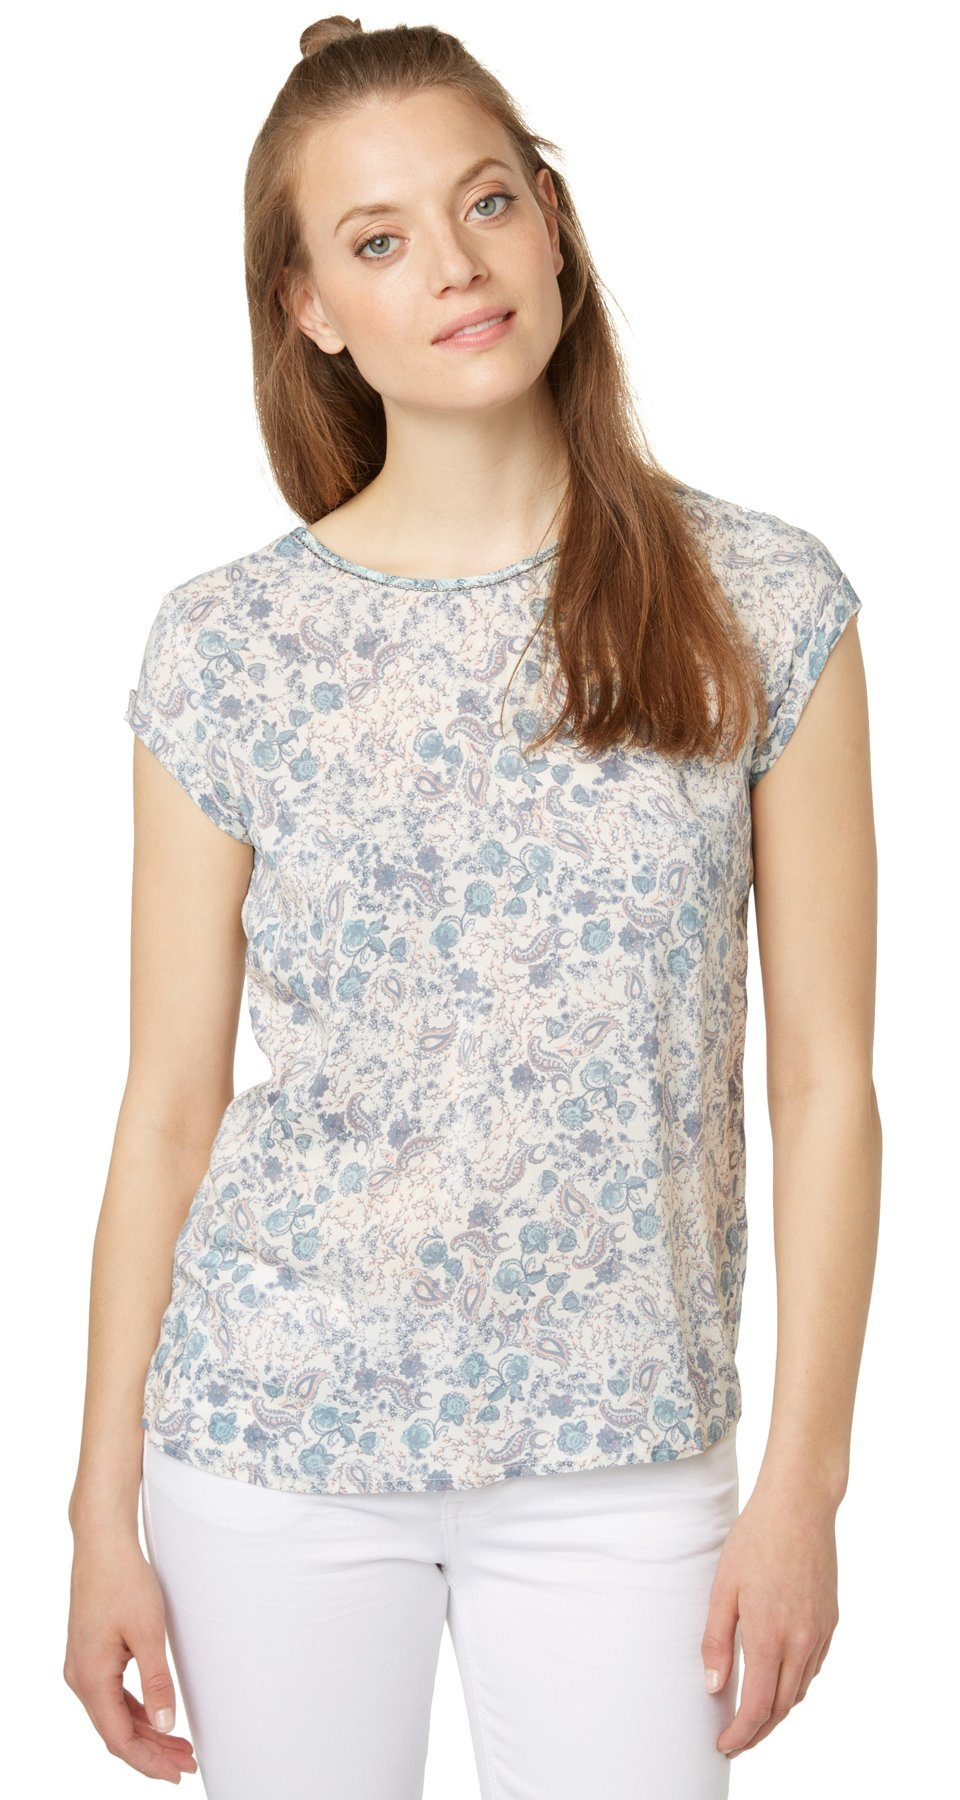 TOM TAILOR Bluse »Shirt mit Paisley-Muster«